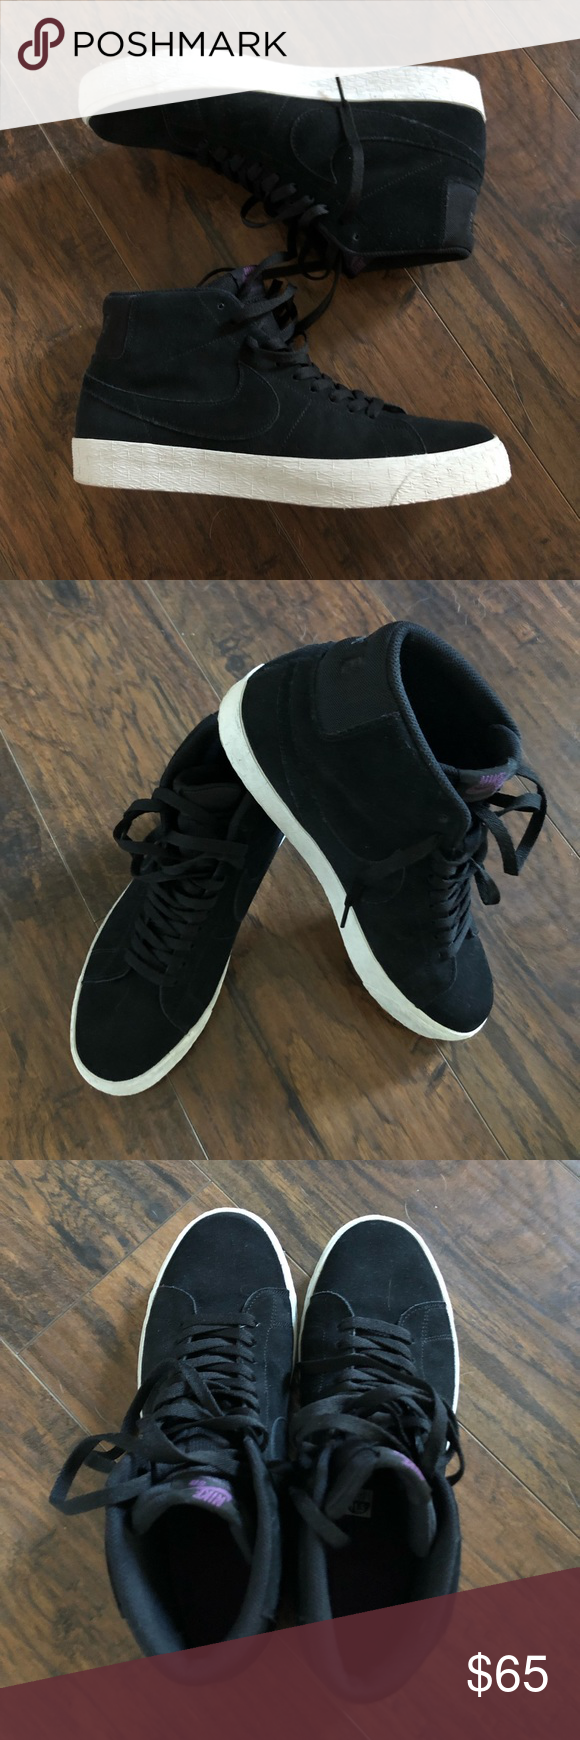 dac50f747cc1 Nike SB Zoom Blazer Mid Decon shoes Nike SB Zoom Blazer Mid Decon shoes in  black black-pro purple. Ships with original box. Only worn once and still  in like ...